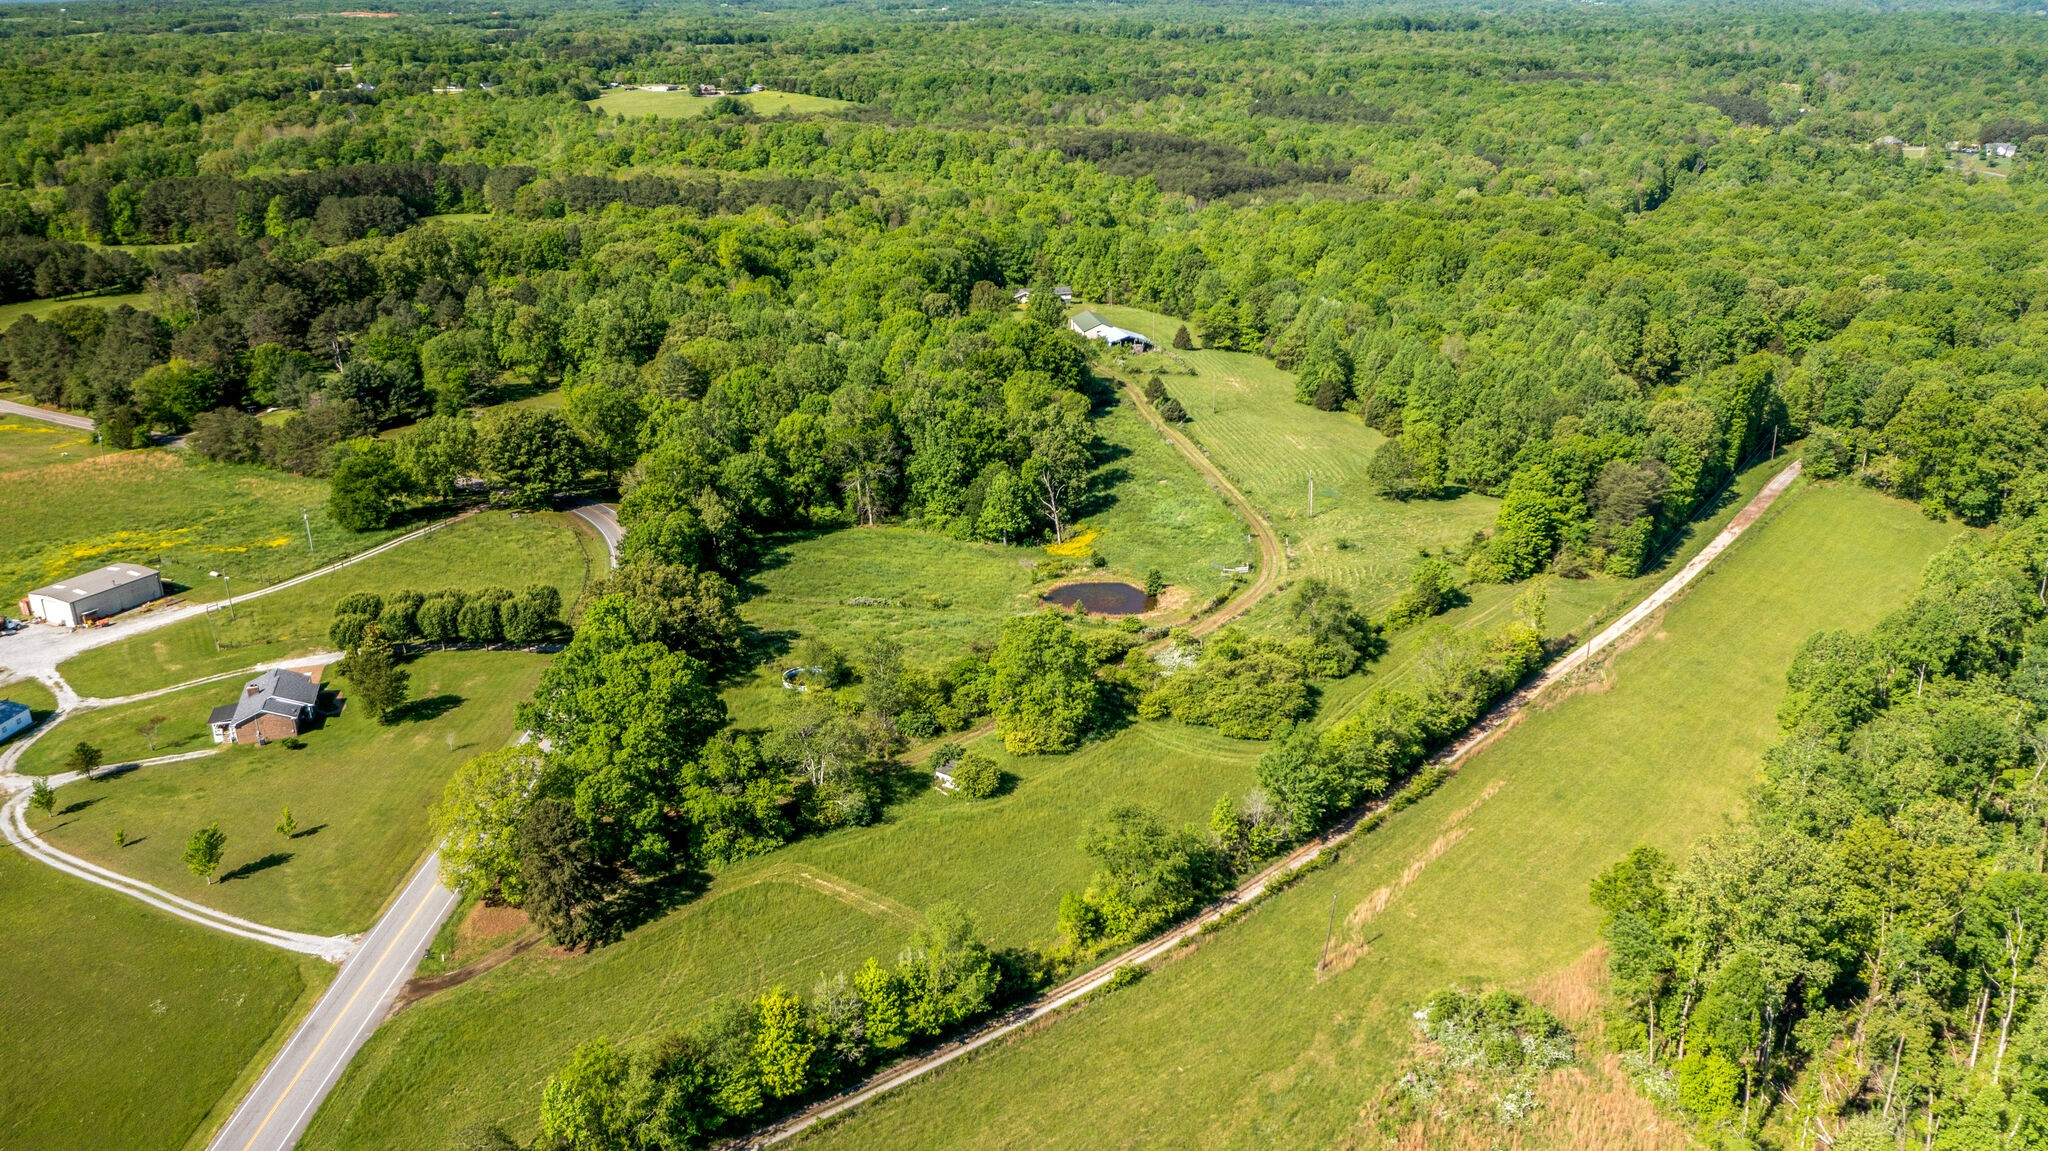 Amazing piece of property/land in a wonderful area. Close to hw 96, I40 and I840. There are tons of possibilities with this unique property. You have a pasture and open fields along with beautiful mature trees. A pond, two springs and frontage on Turnbull creek. Power is already run to the back, and a well is in place. Two barns and some fences already in place. This is the Williamson county farm you have been searching for! **See the media section for drone video.